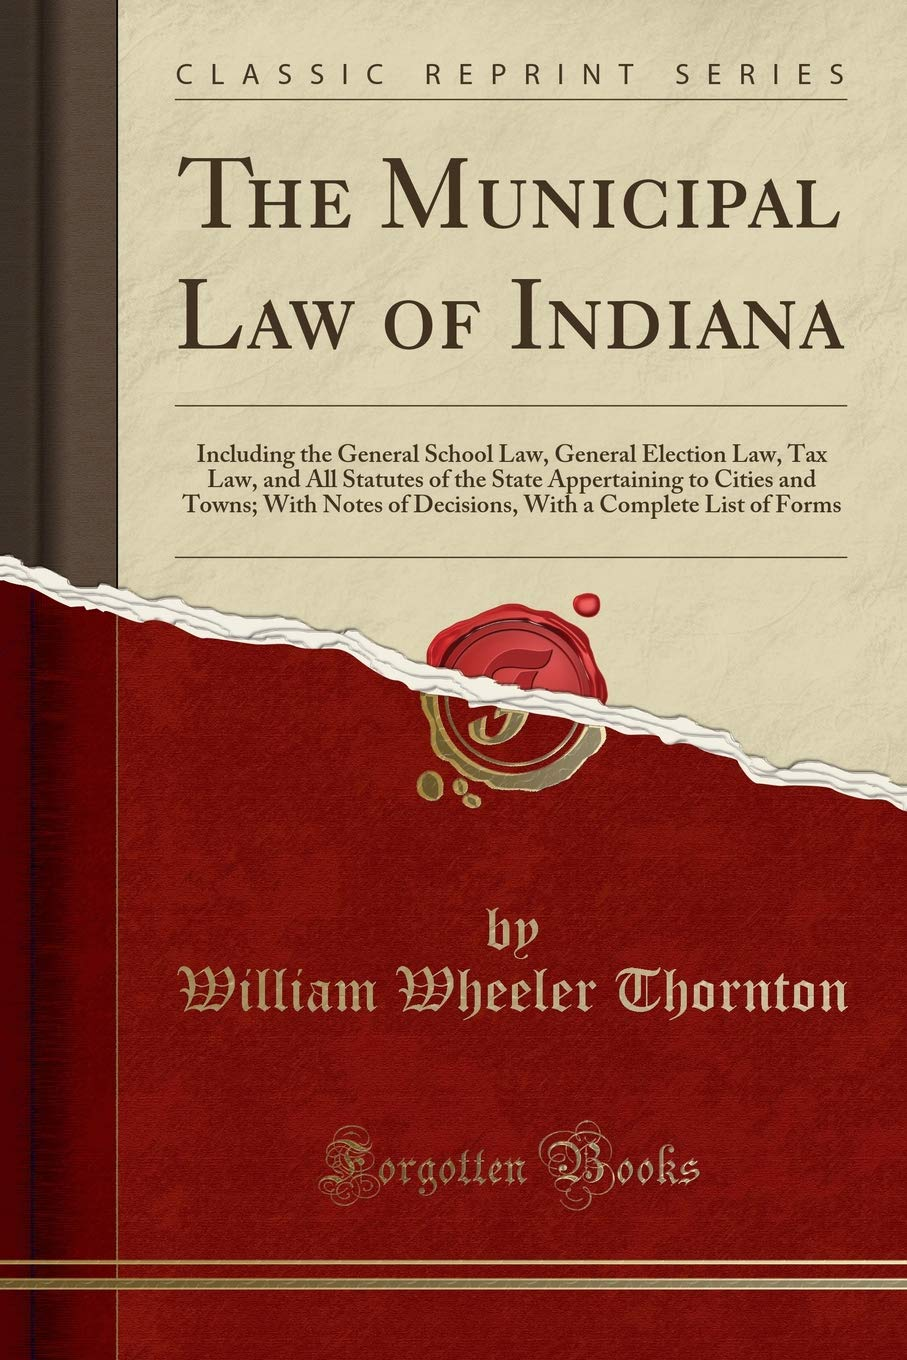 The Municipal Law of Indiana: Including the General School Law, General Election Law, Tax Law, and All Statutes of the State Appertaining to Cities ... a Complete List of Forms (Classic Reprint) pdf